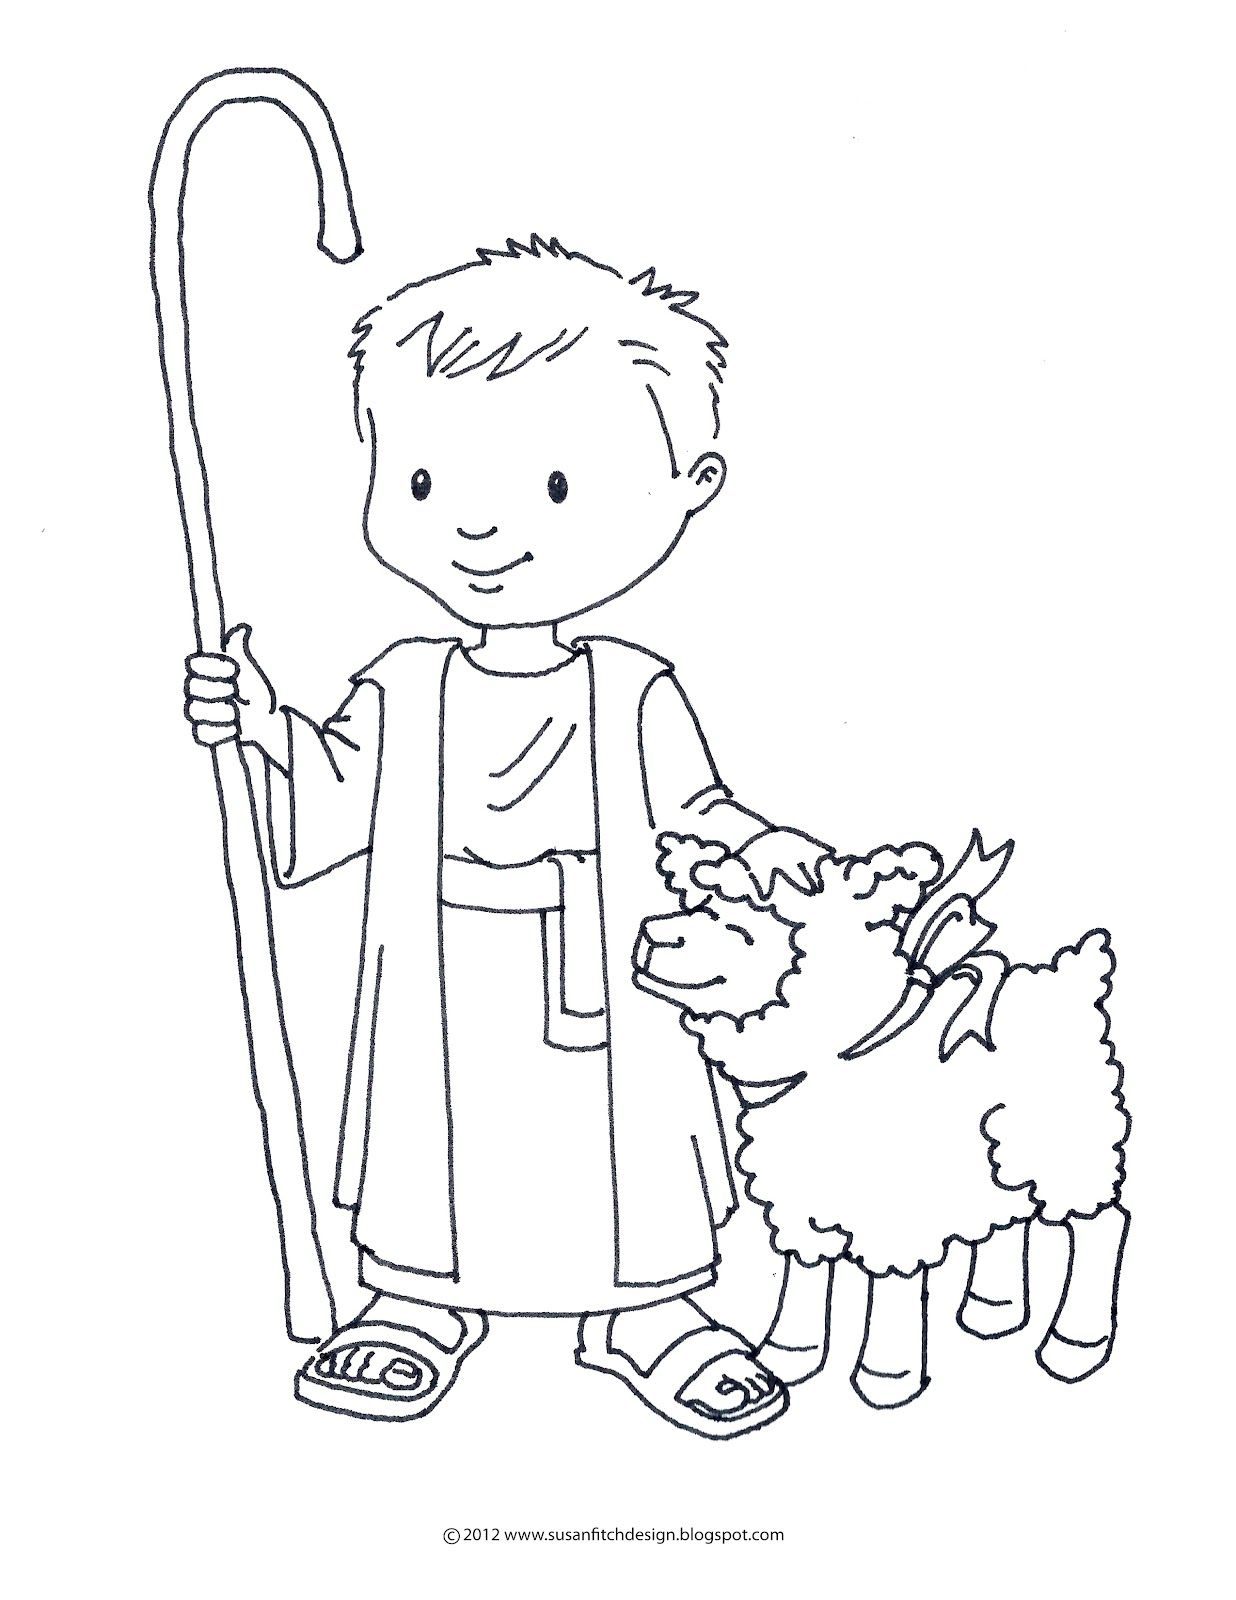 shepherd and sheep coloring page - shepard david coloring sheet google search coloring